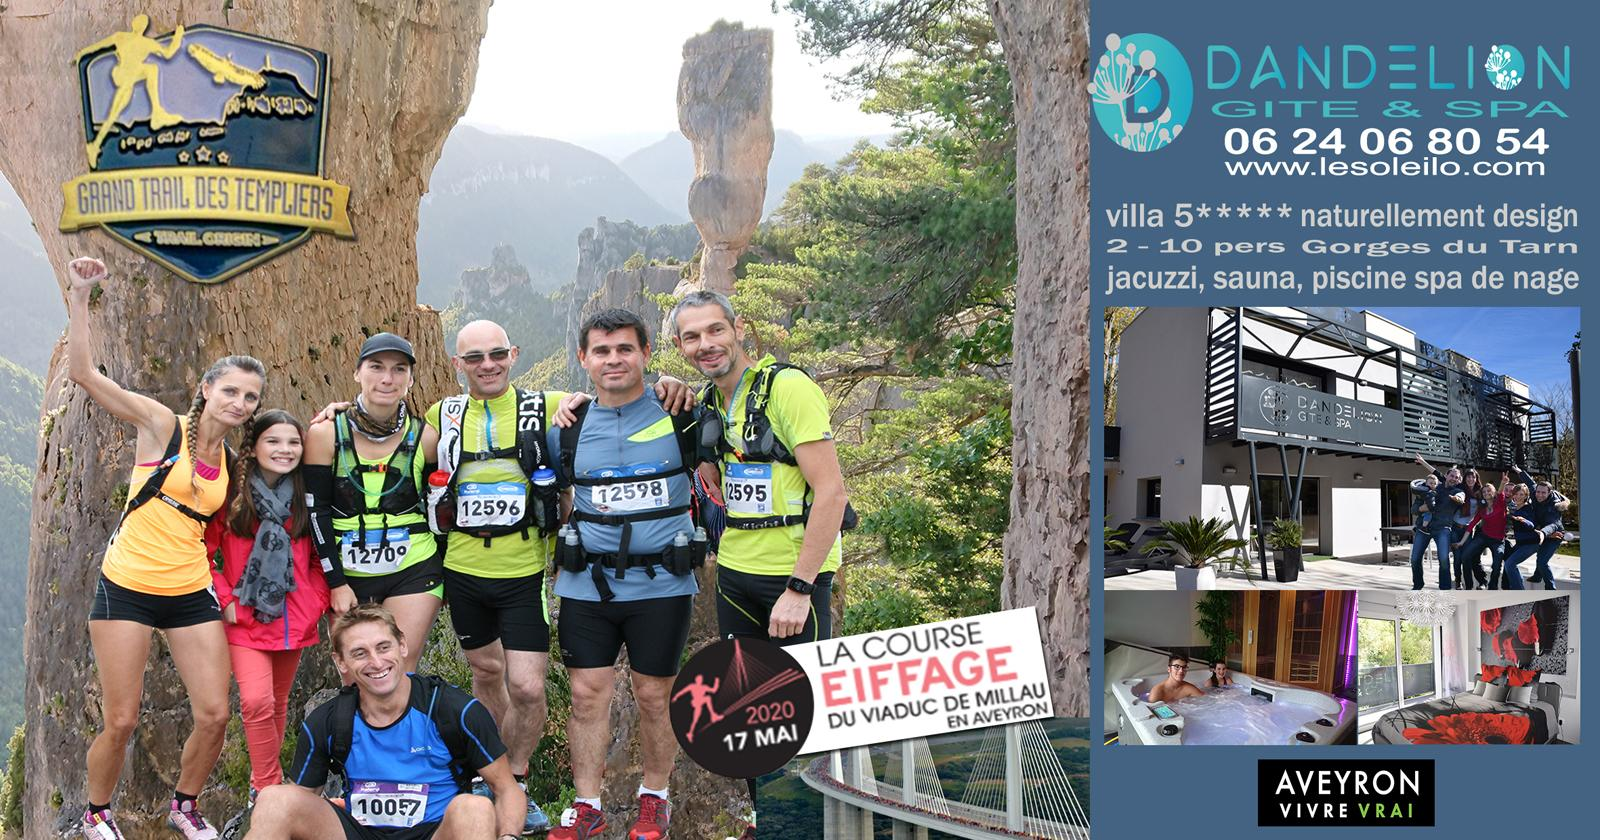 Race Viaduct, Larzac trip trail and Templars for a sports and wellness weekend in lodging with Jacuzzi